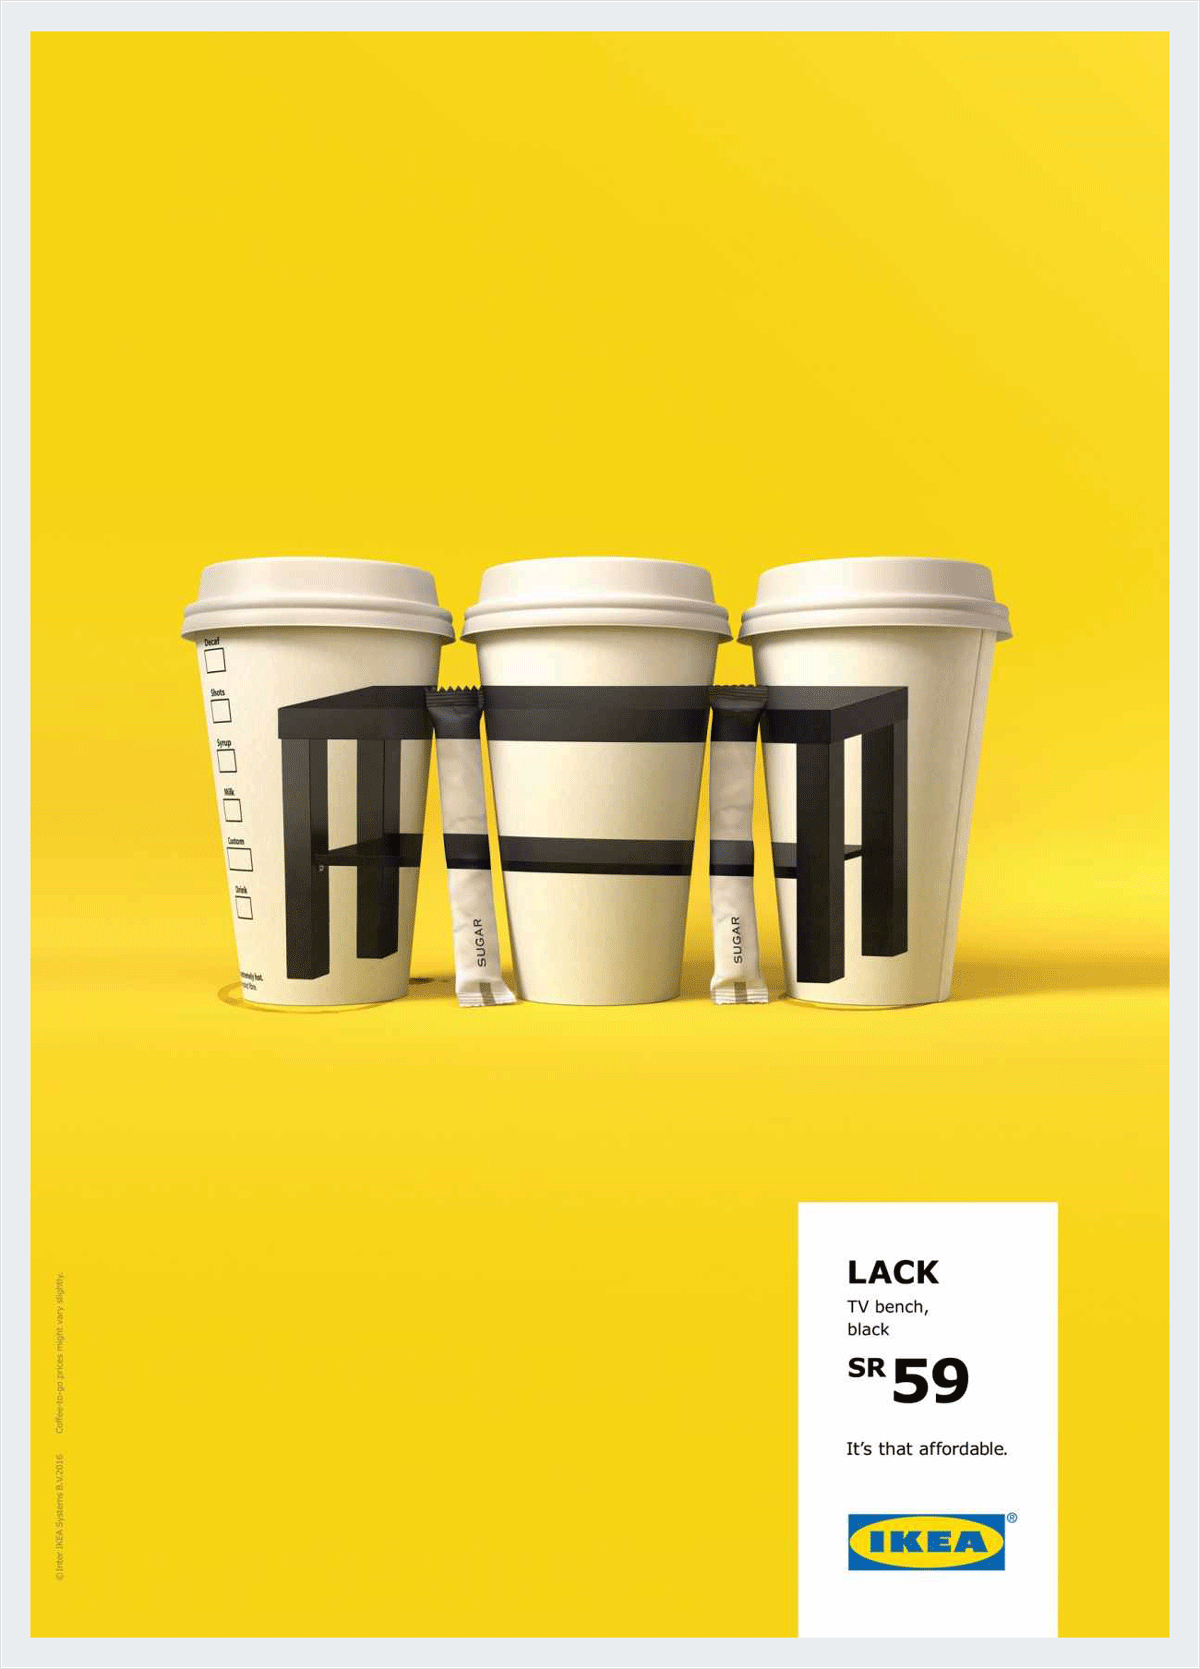 visual metaphor example ikea